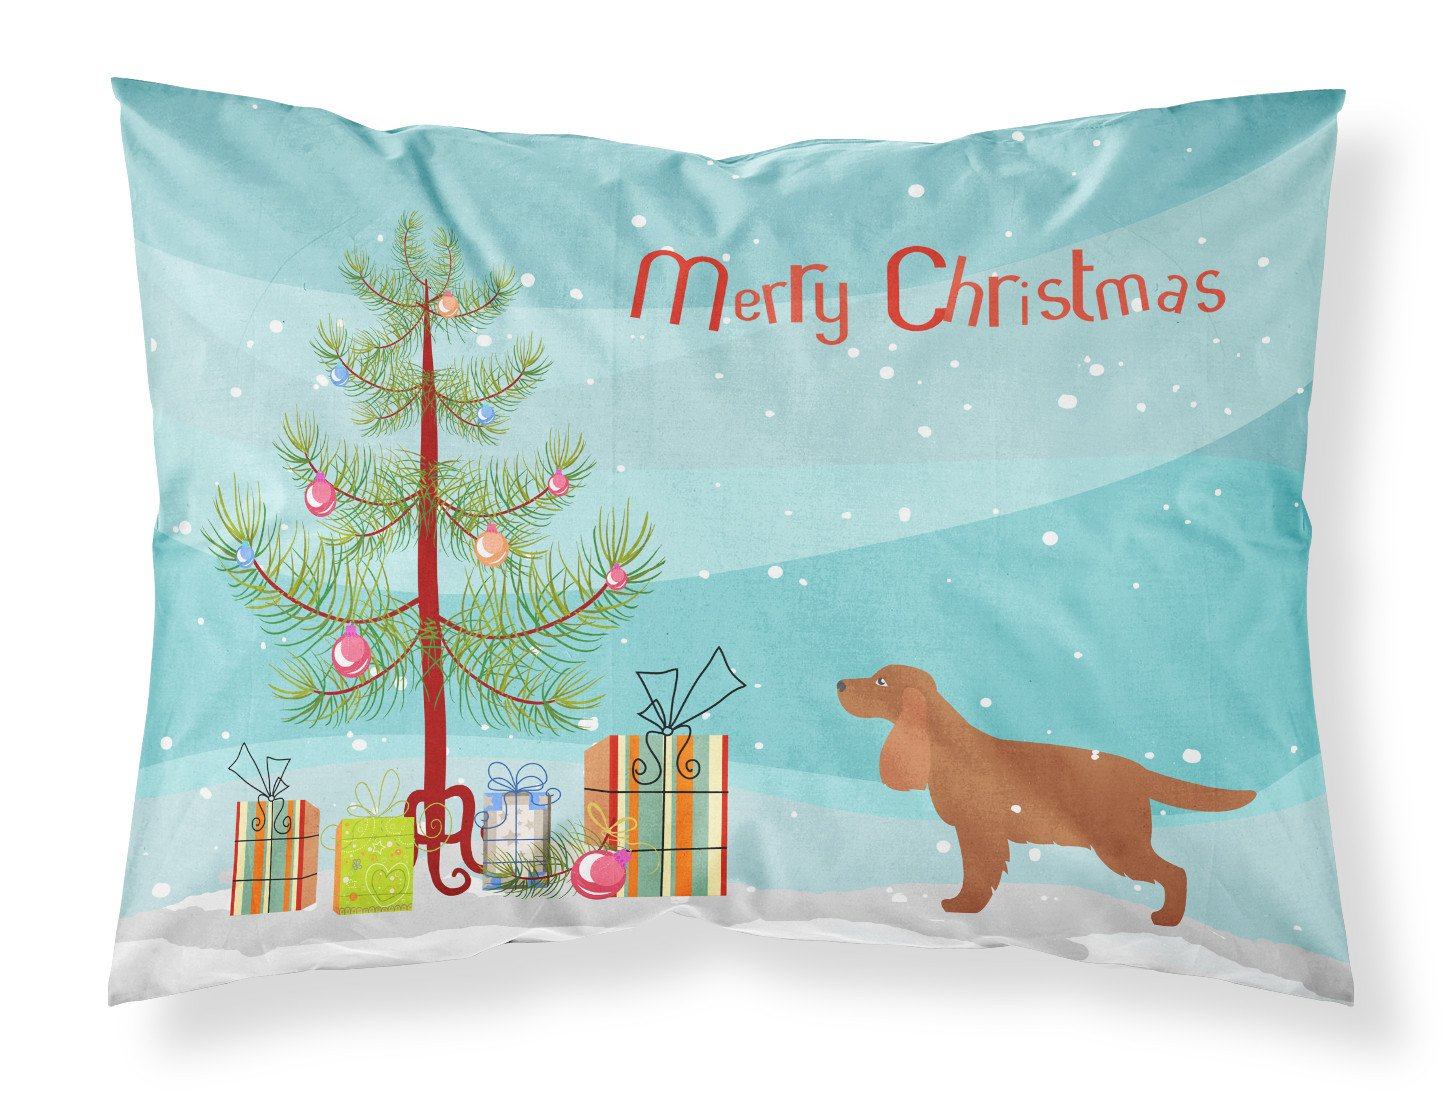 English Cocker Spaniel Merry Christmas Tree Fabric Standard Pillowcase BB2930PILLOWCASE by Caroline's Treasures